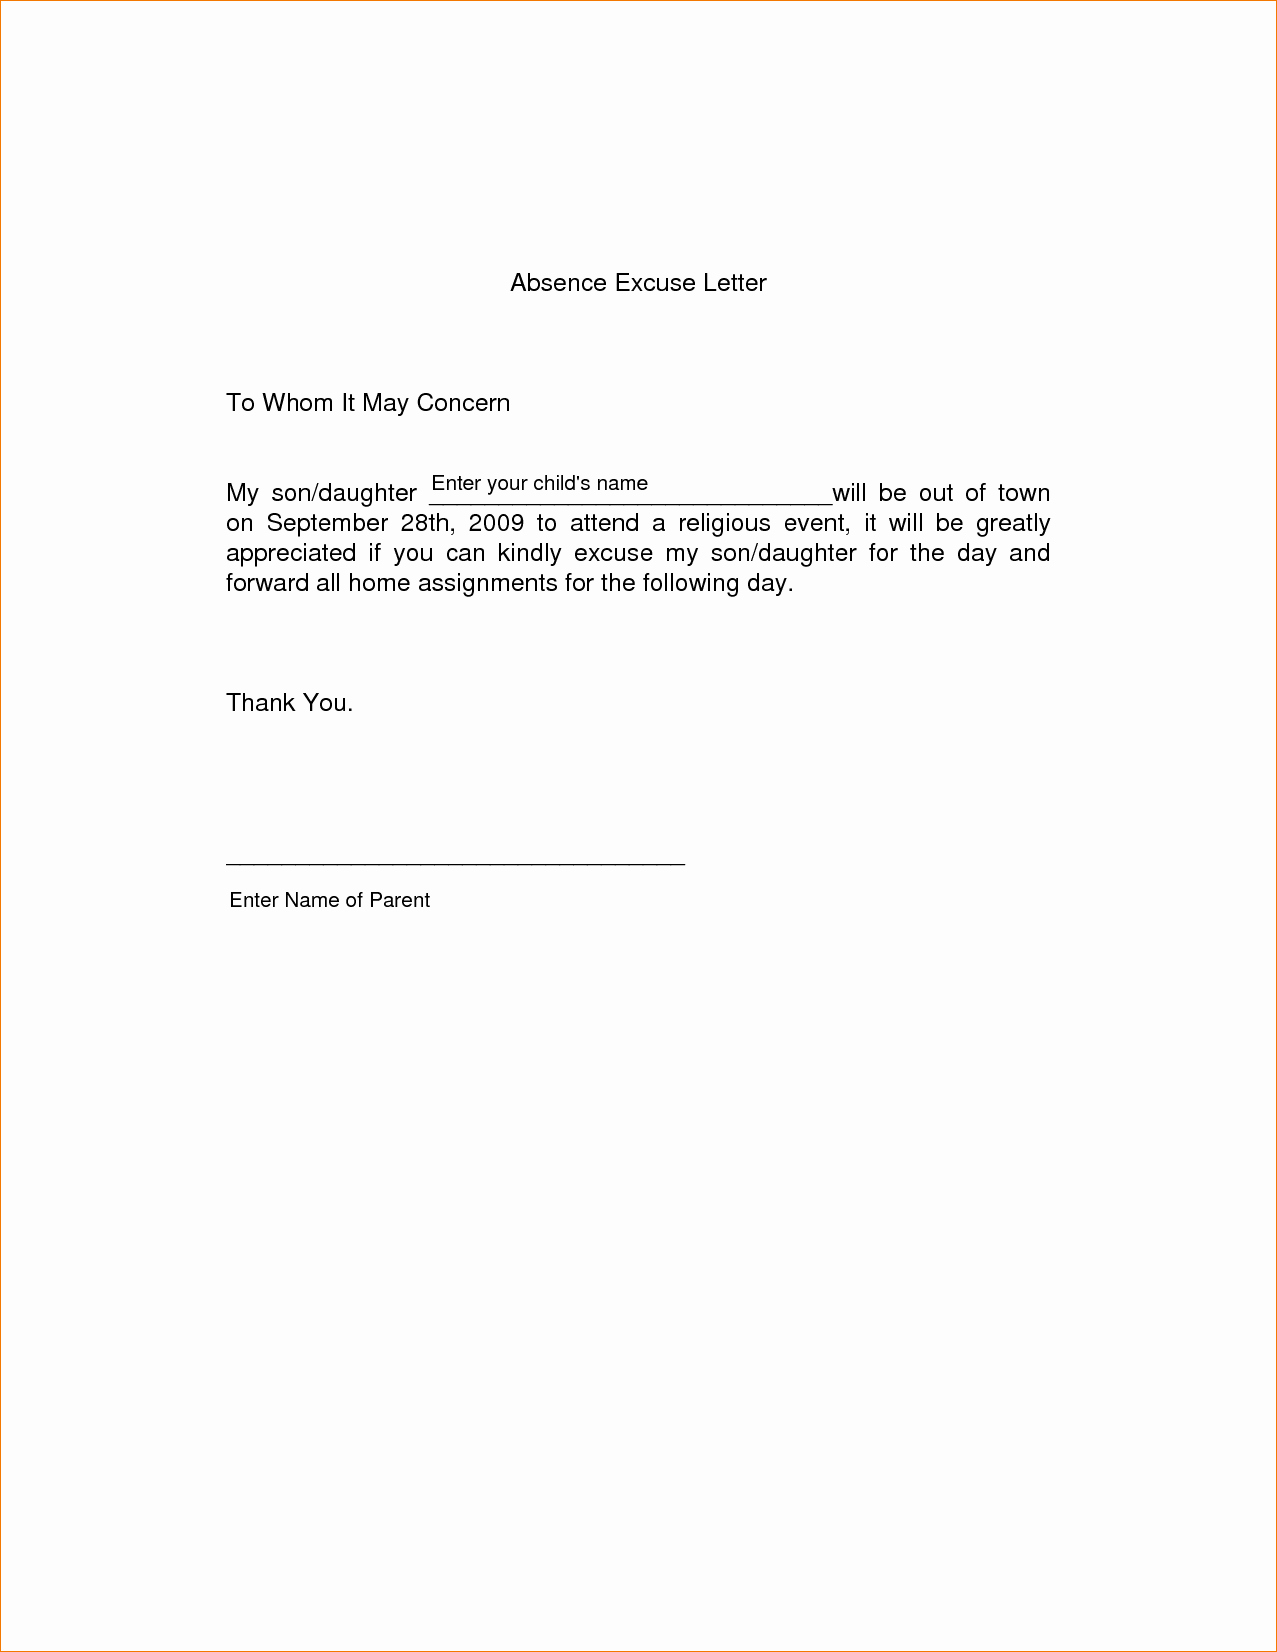 Absence Excuse Letters for School Inspirational 11 Absence Excuse Letteragenda Template Sample